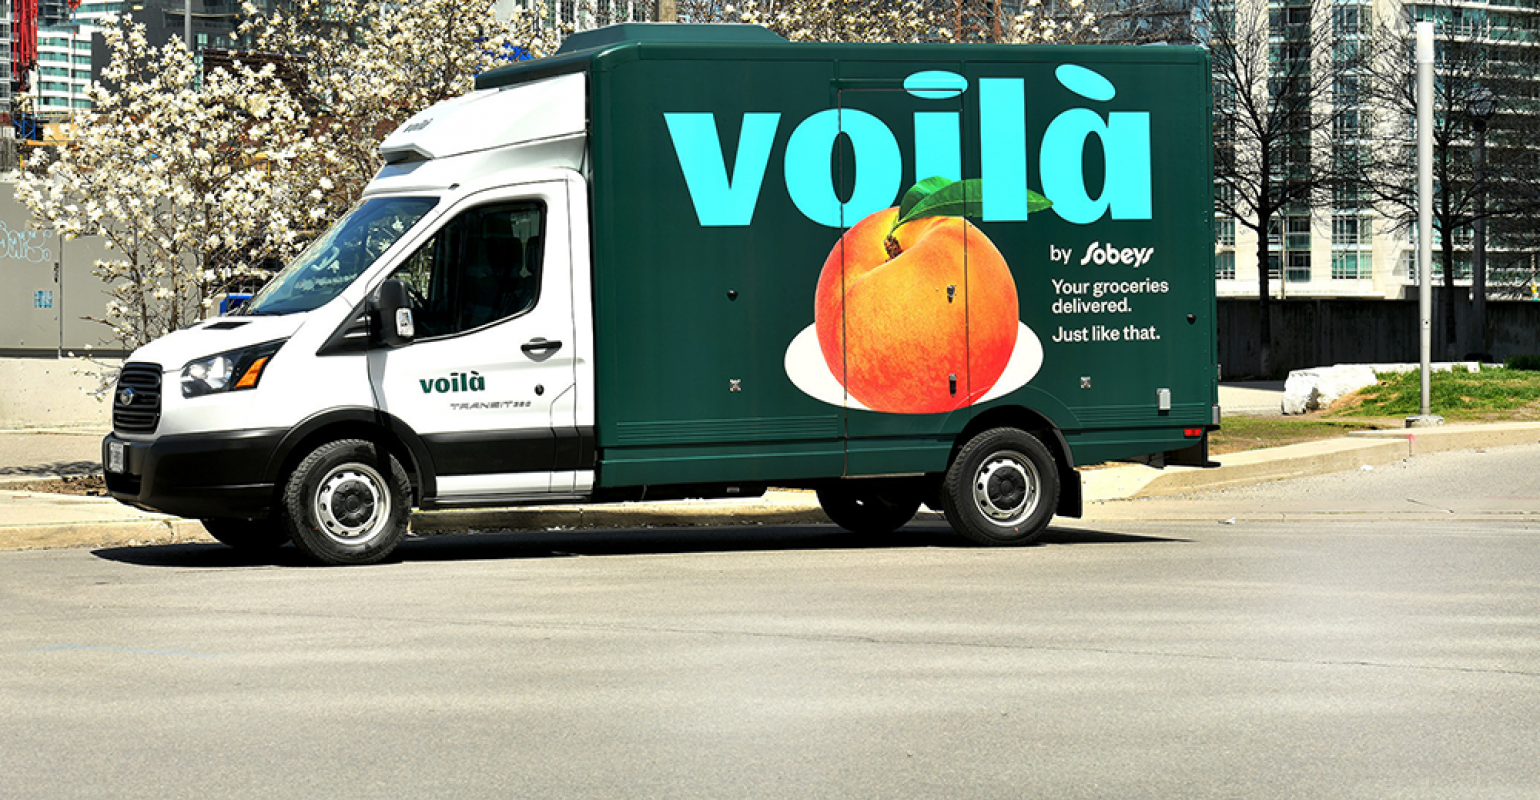 Sobeys_Voila_online_grocery_delivery_truck.png